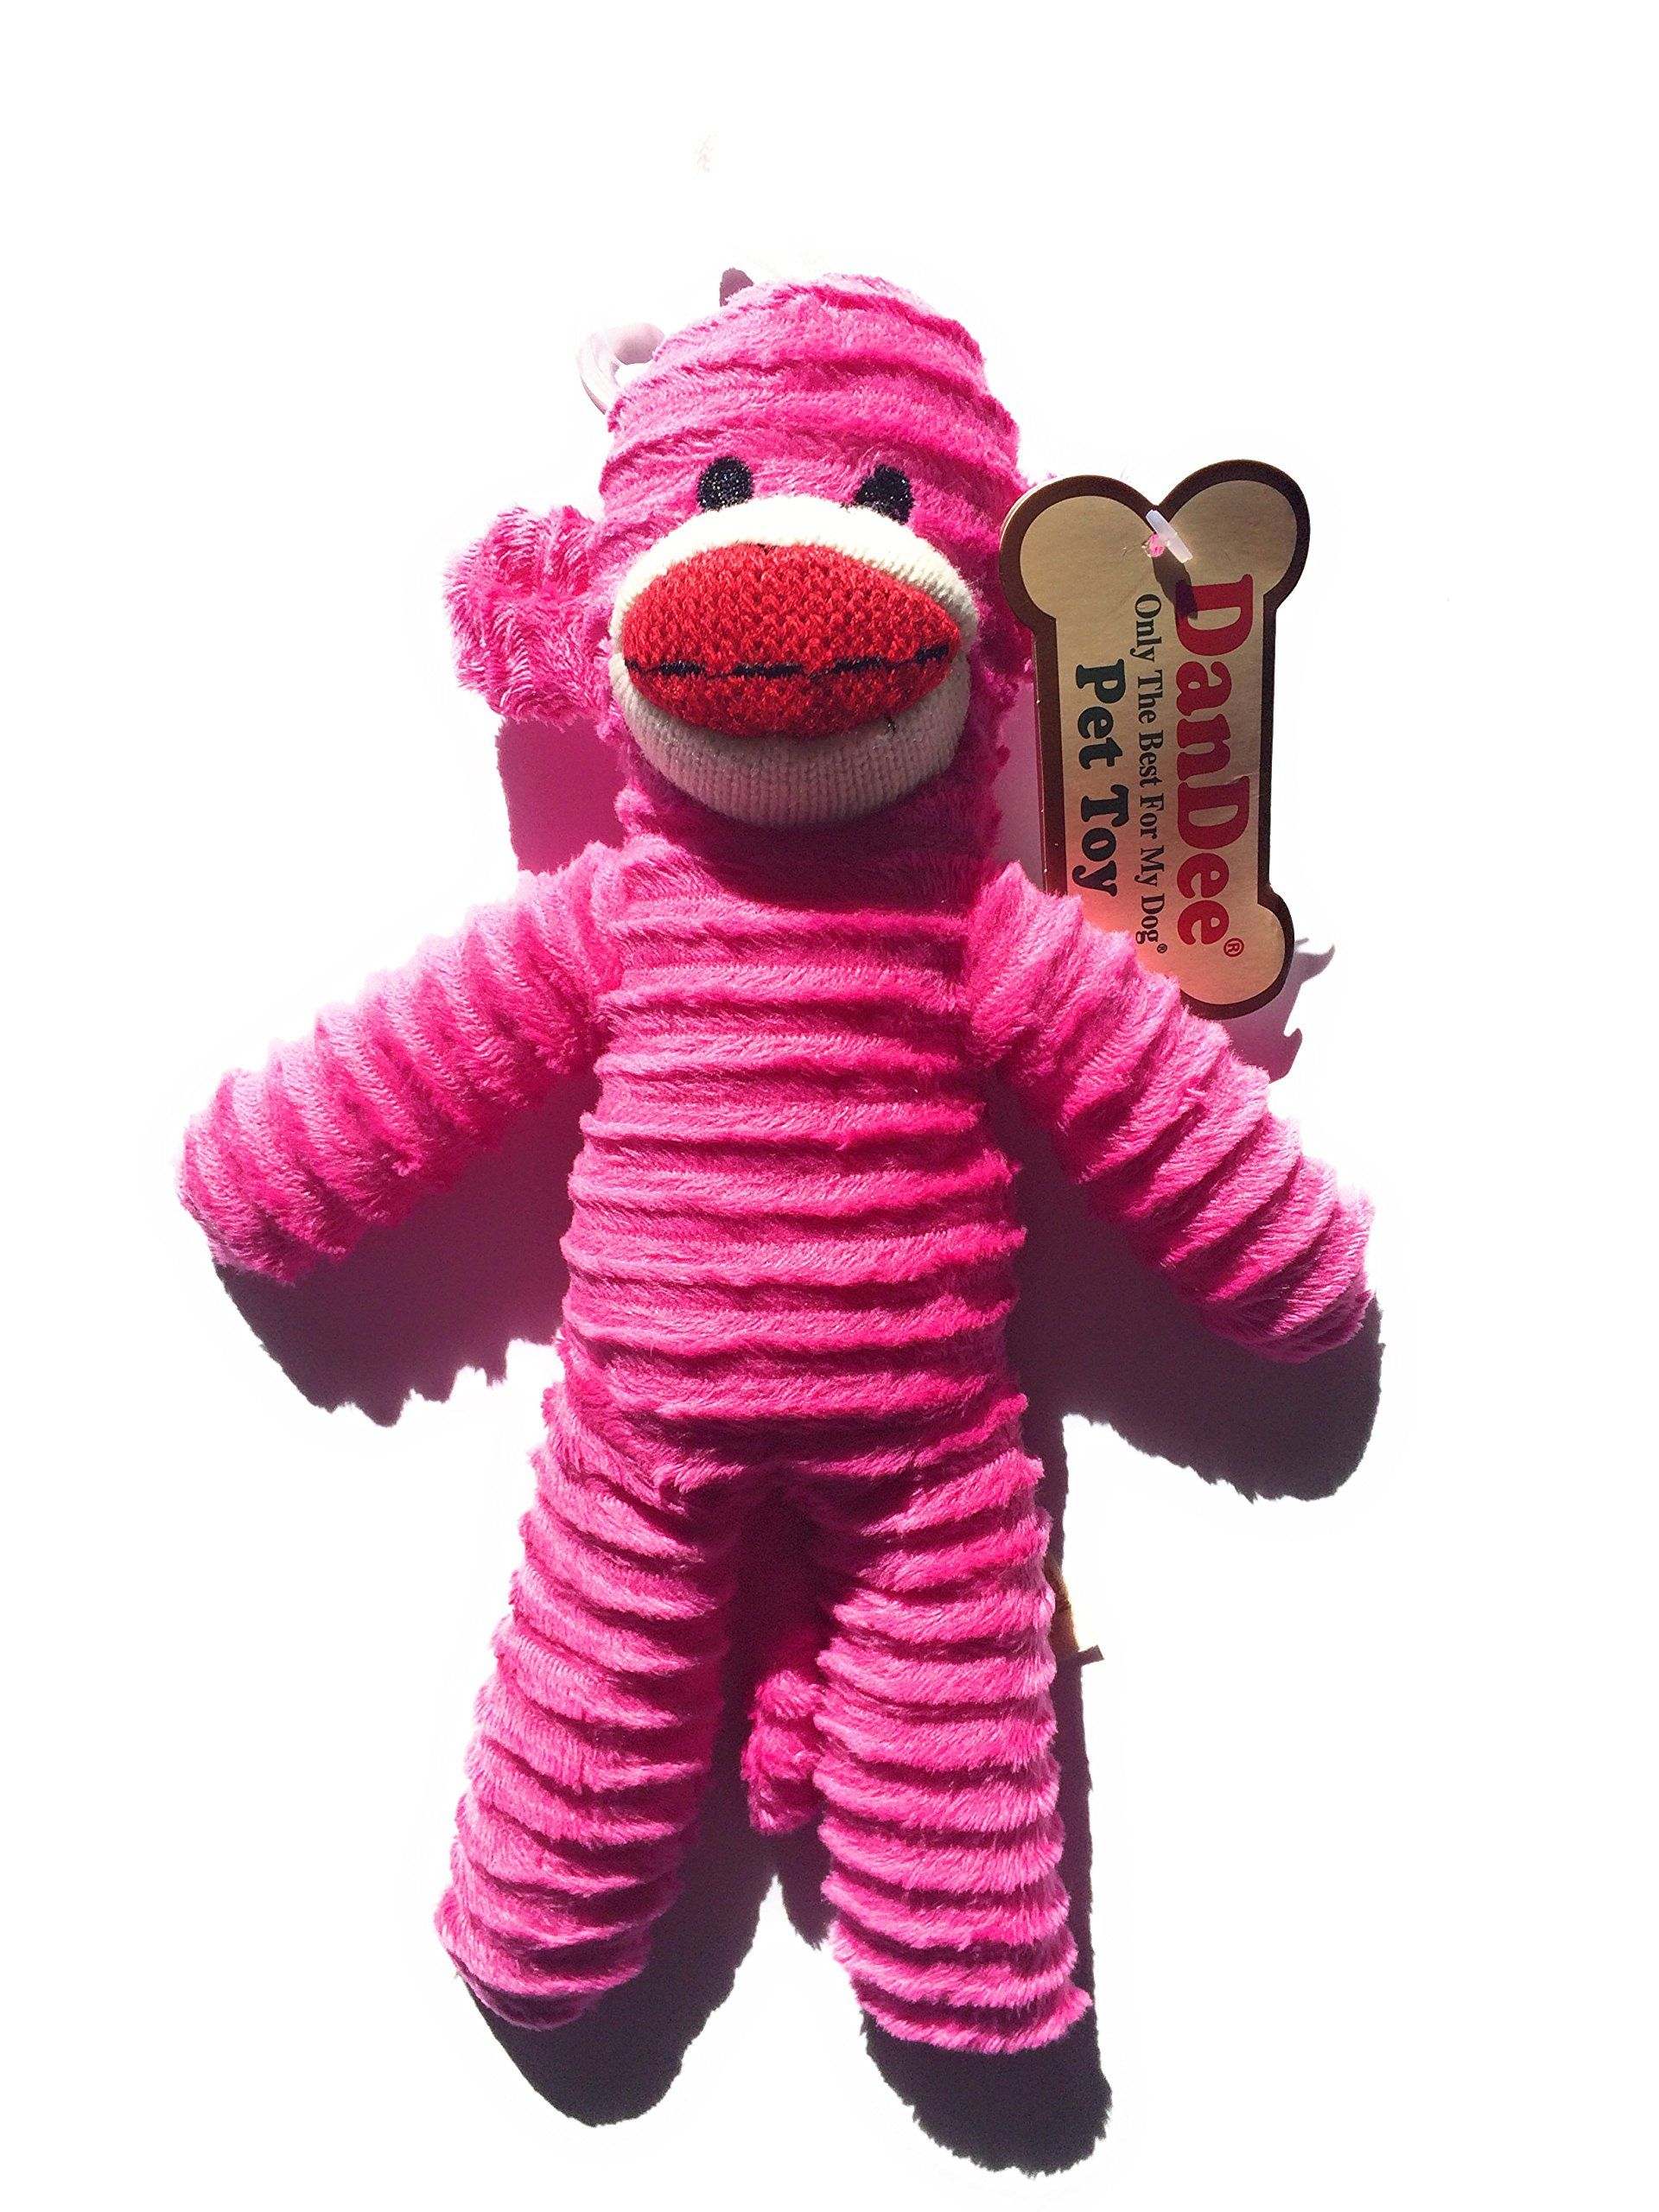 Dandee Only The Best For My Dog Pet Sock Monkey Toy Pink Want